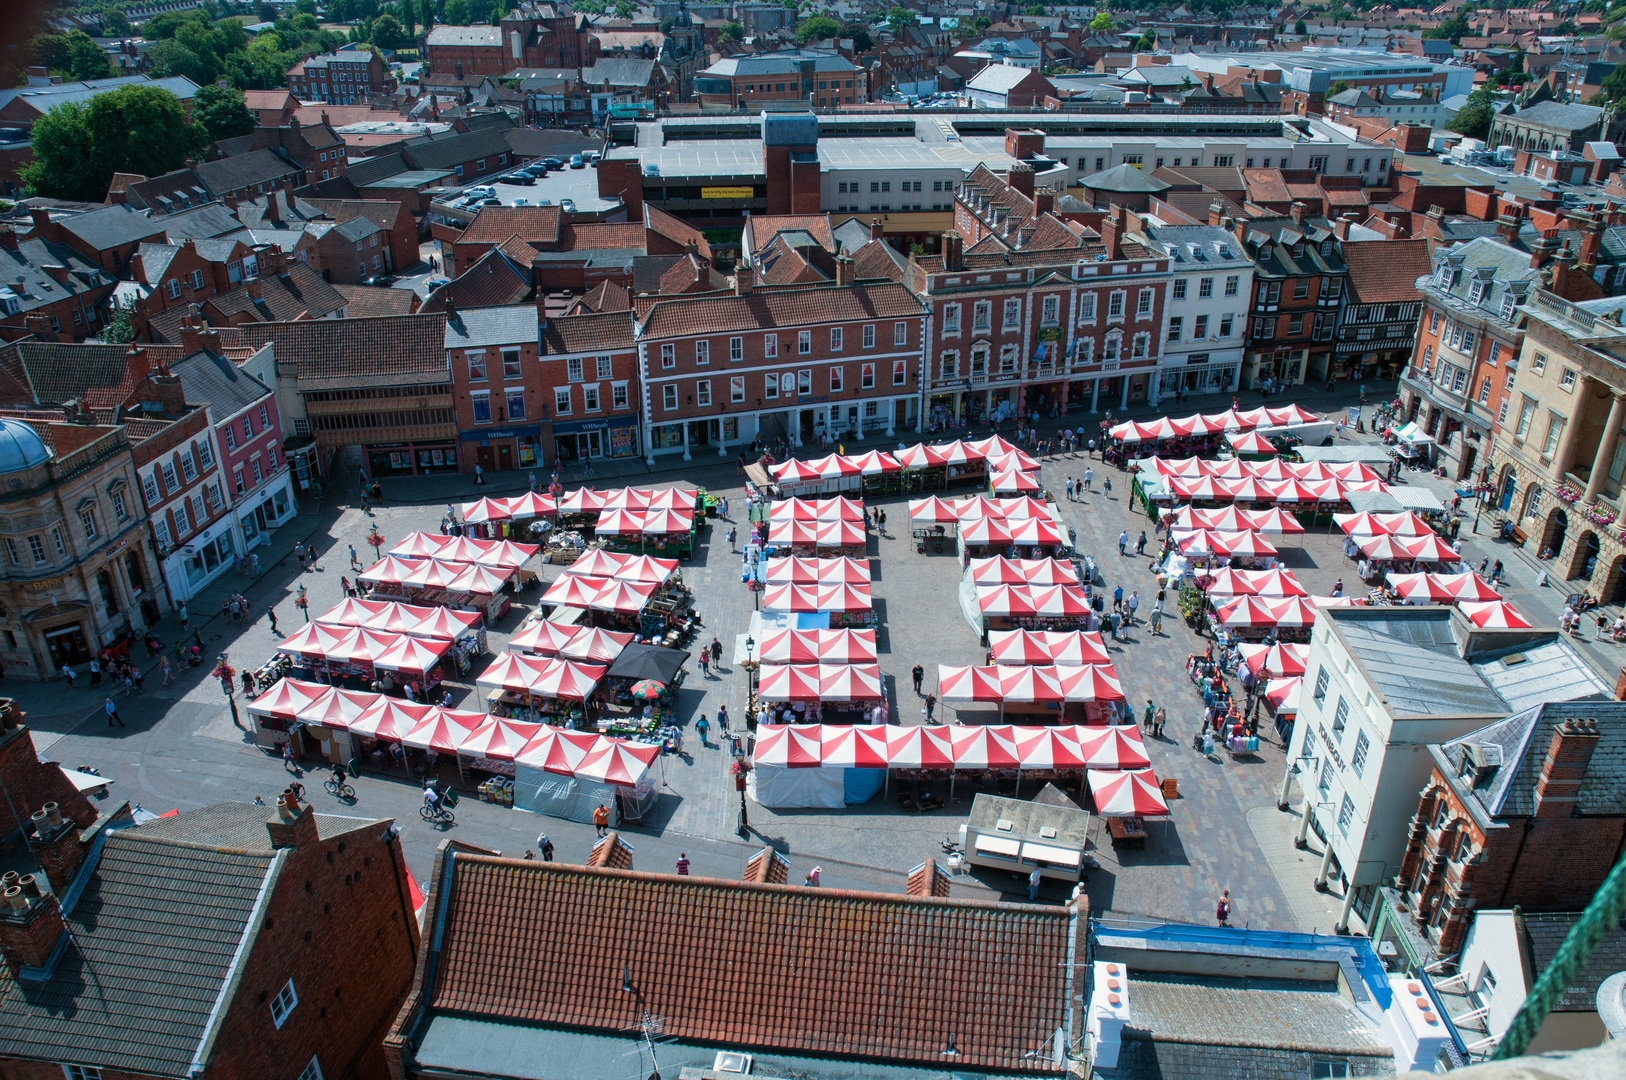 Birds eye view of market stall in town centre square